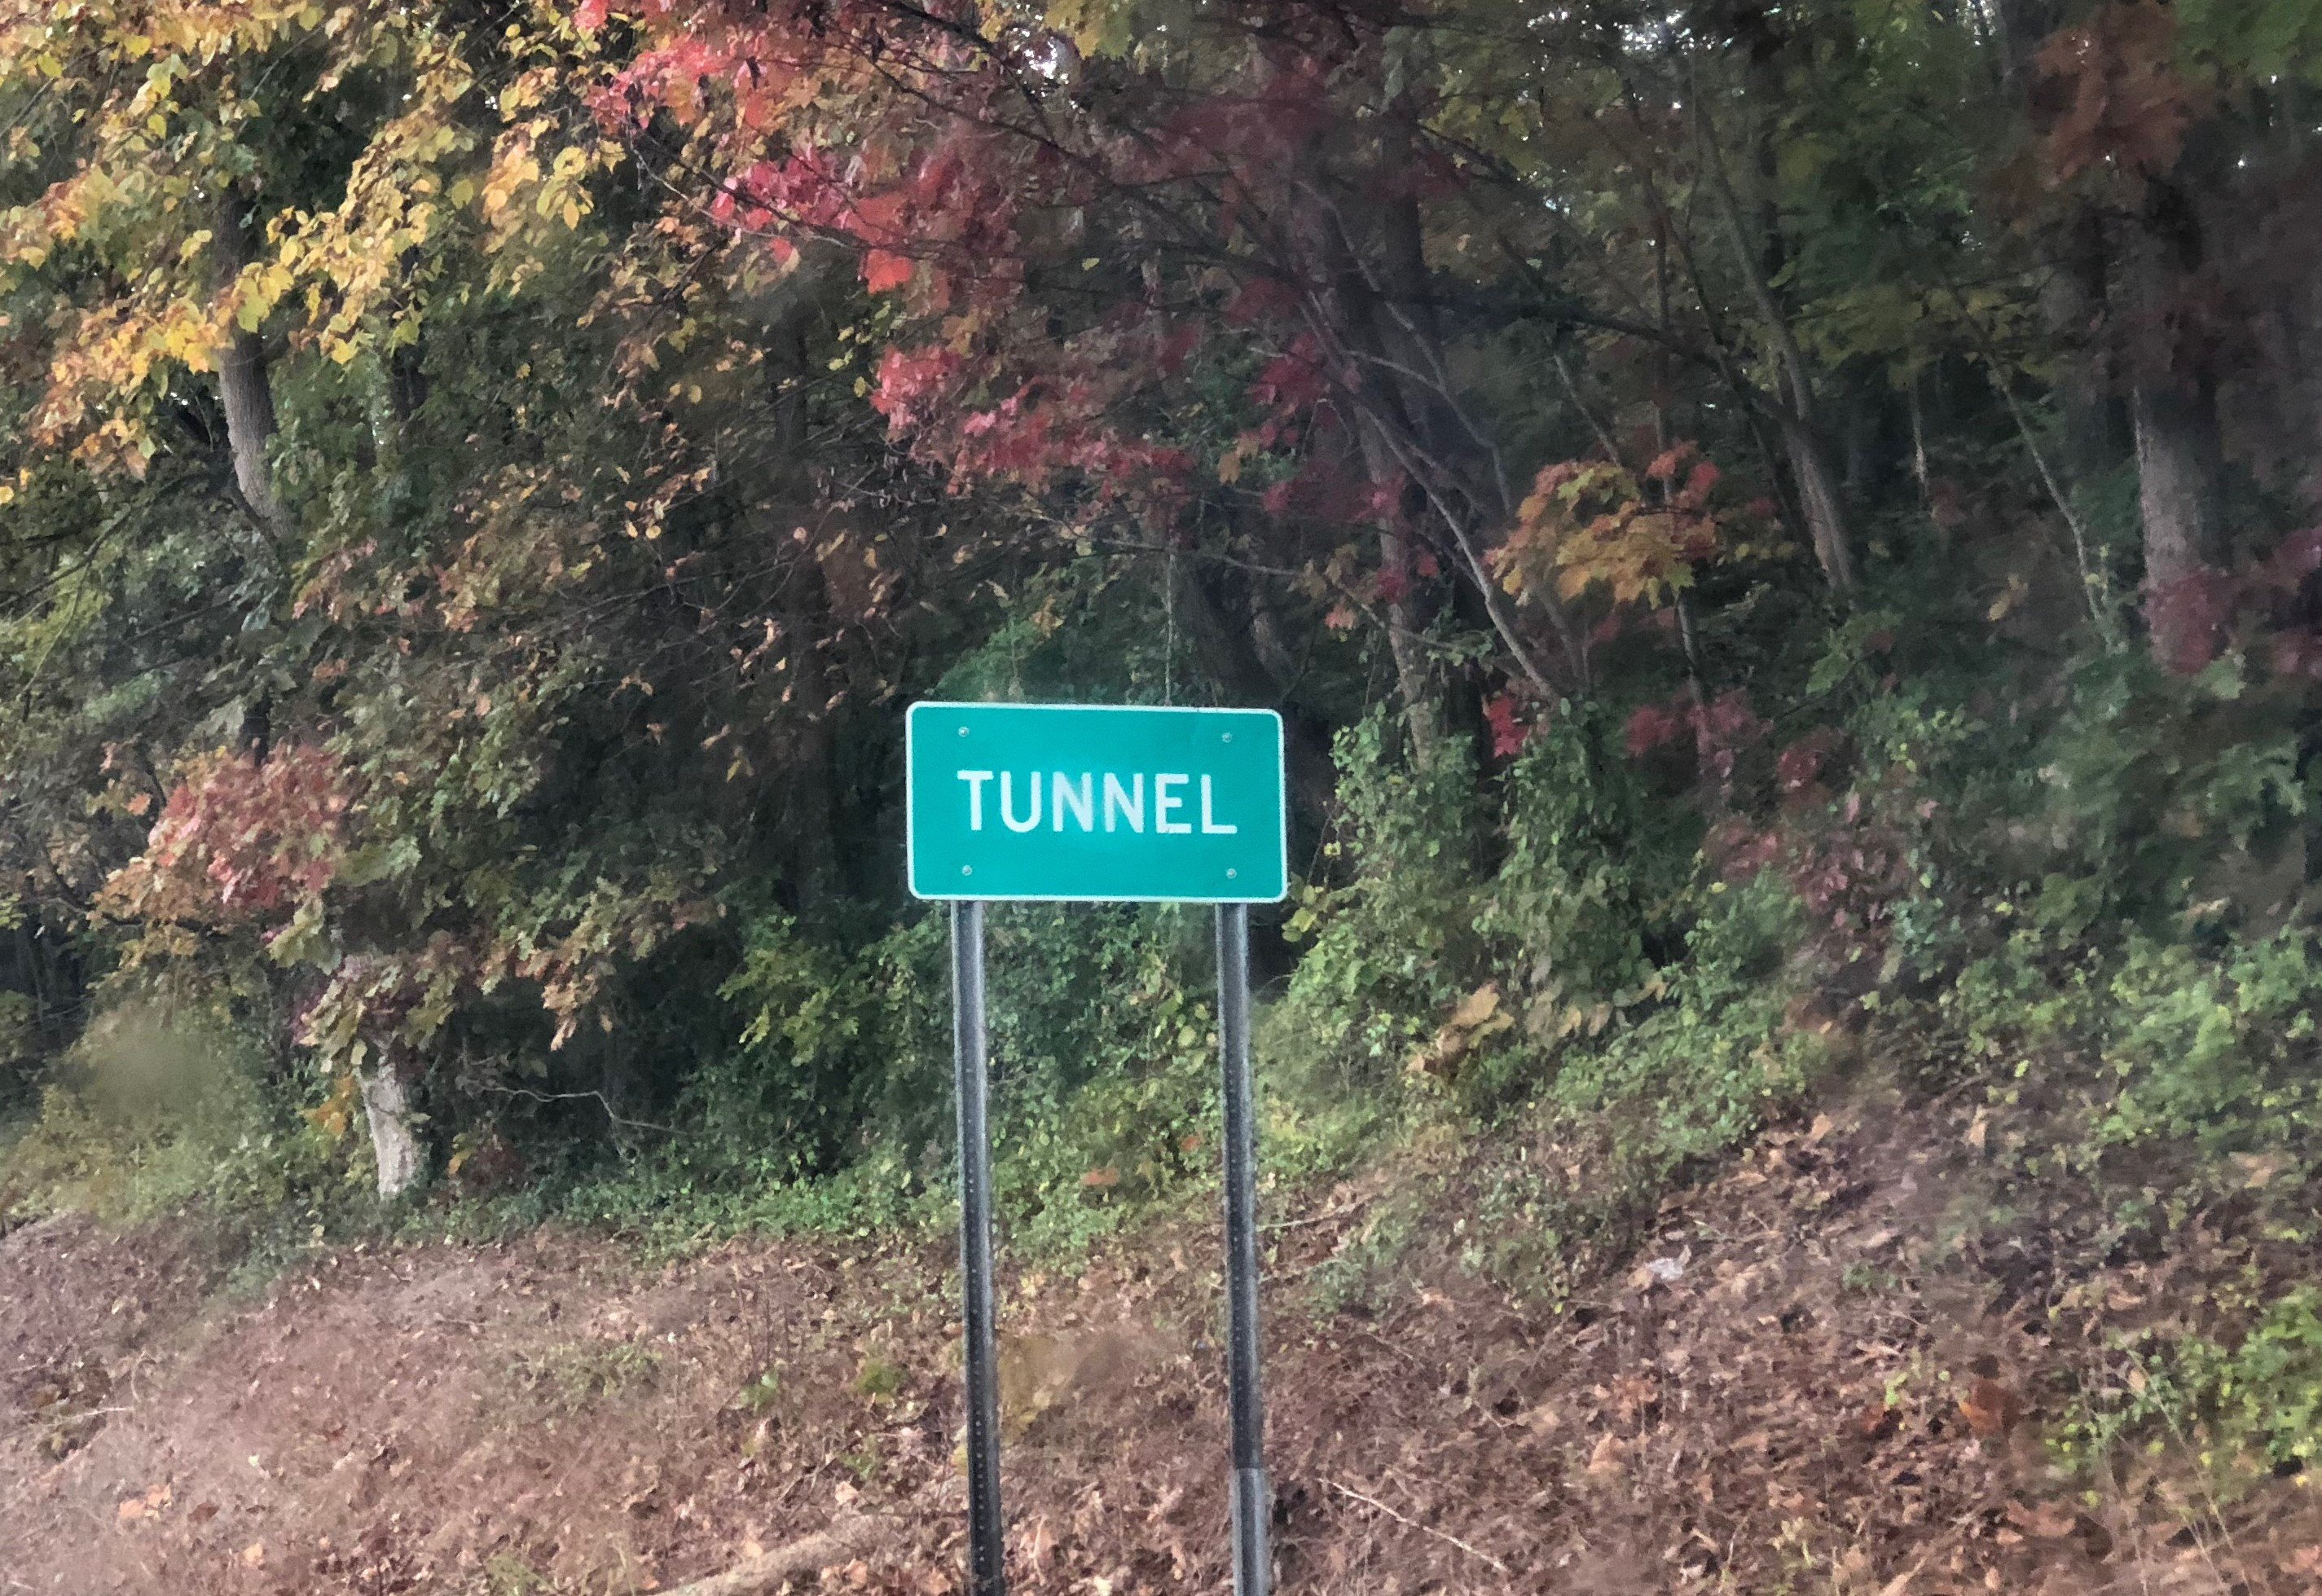 Sign for the community of Tunnel, located on Route 550 just outside of Marietta.